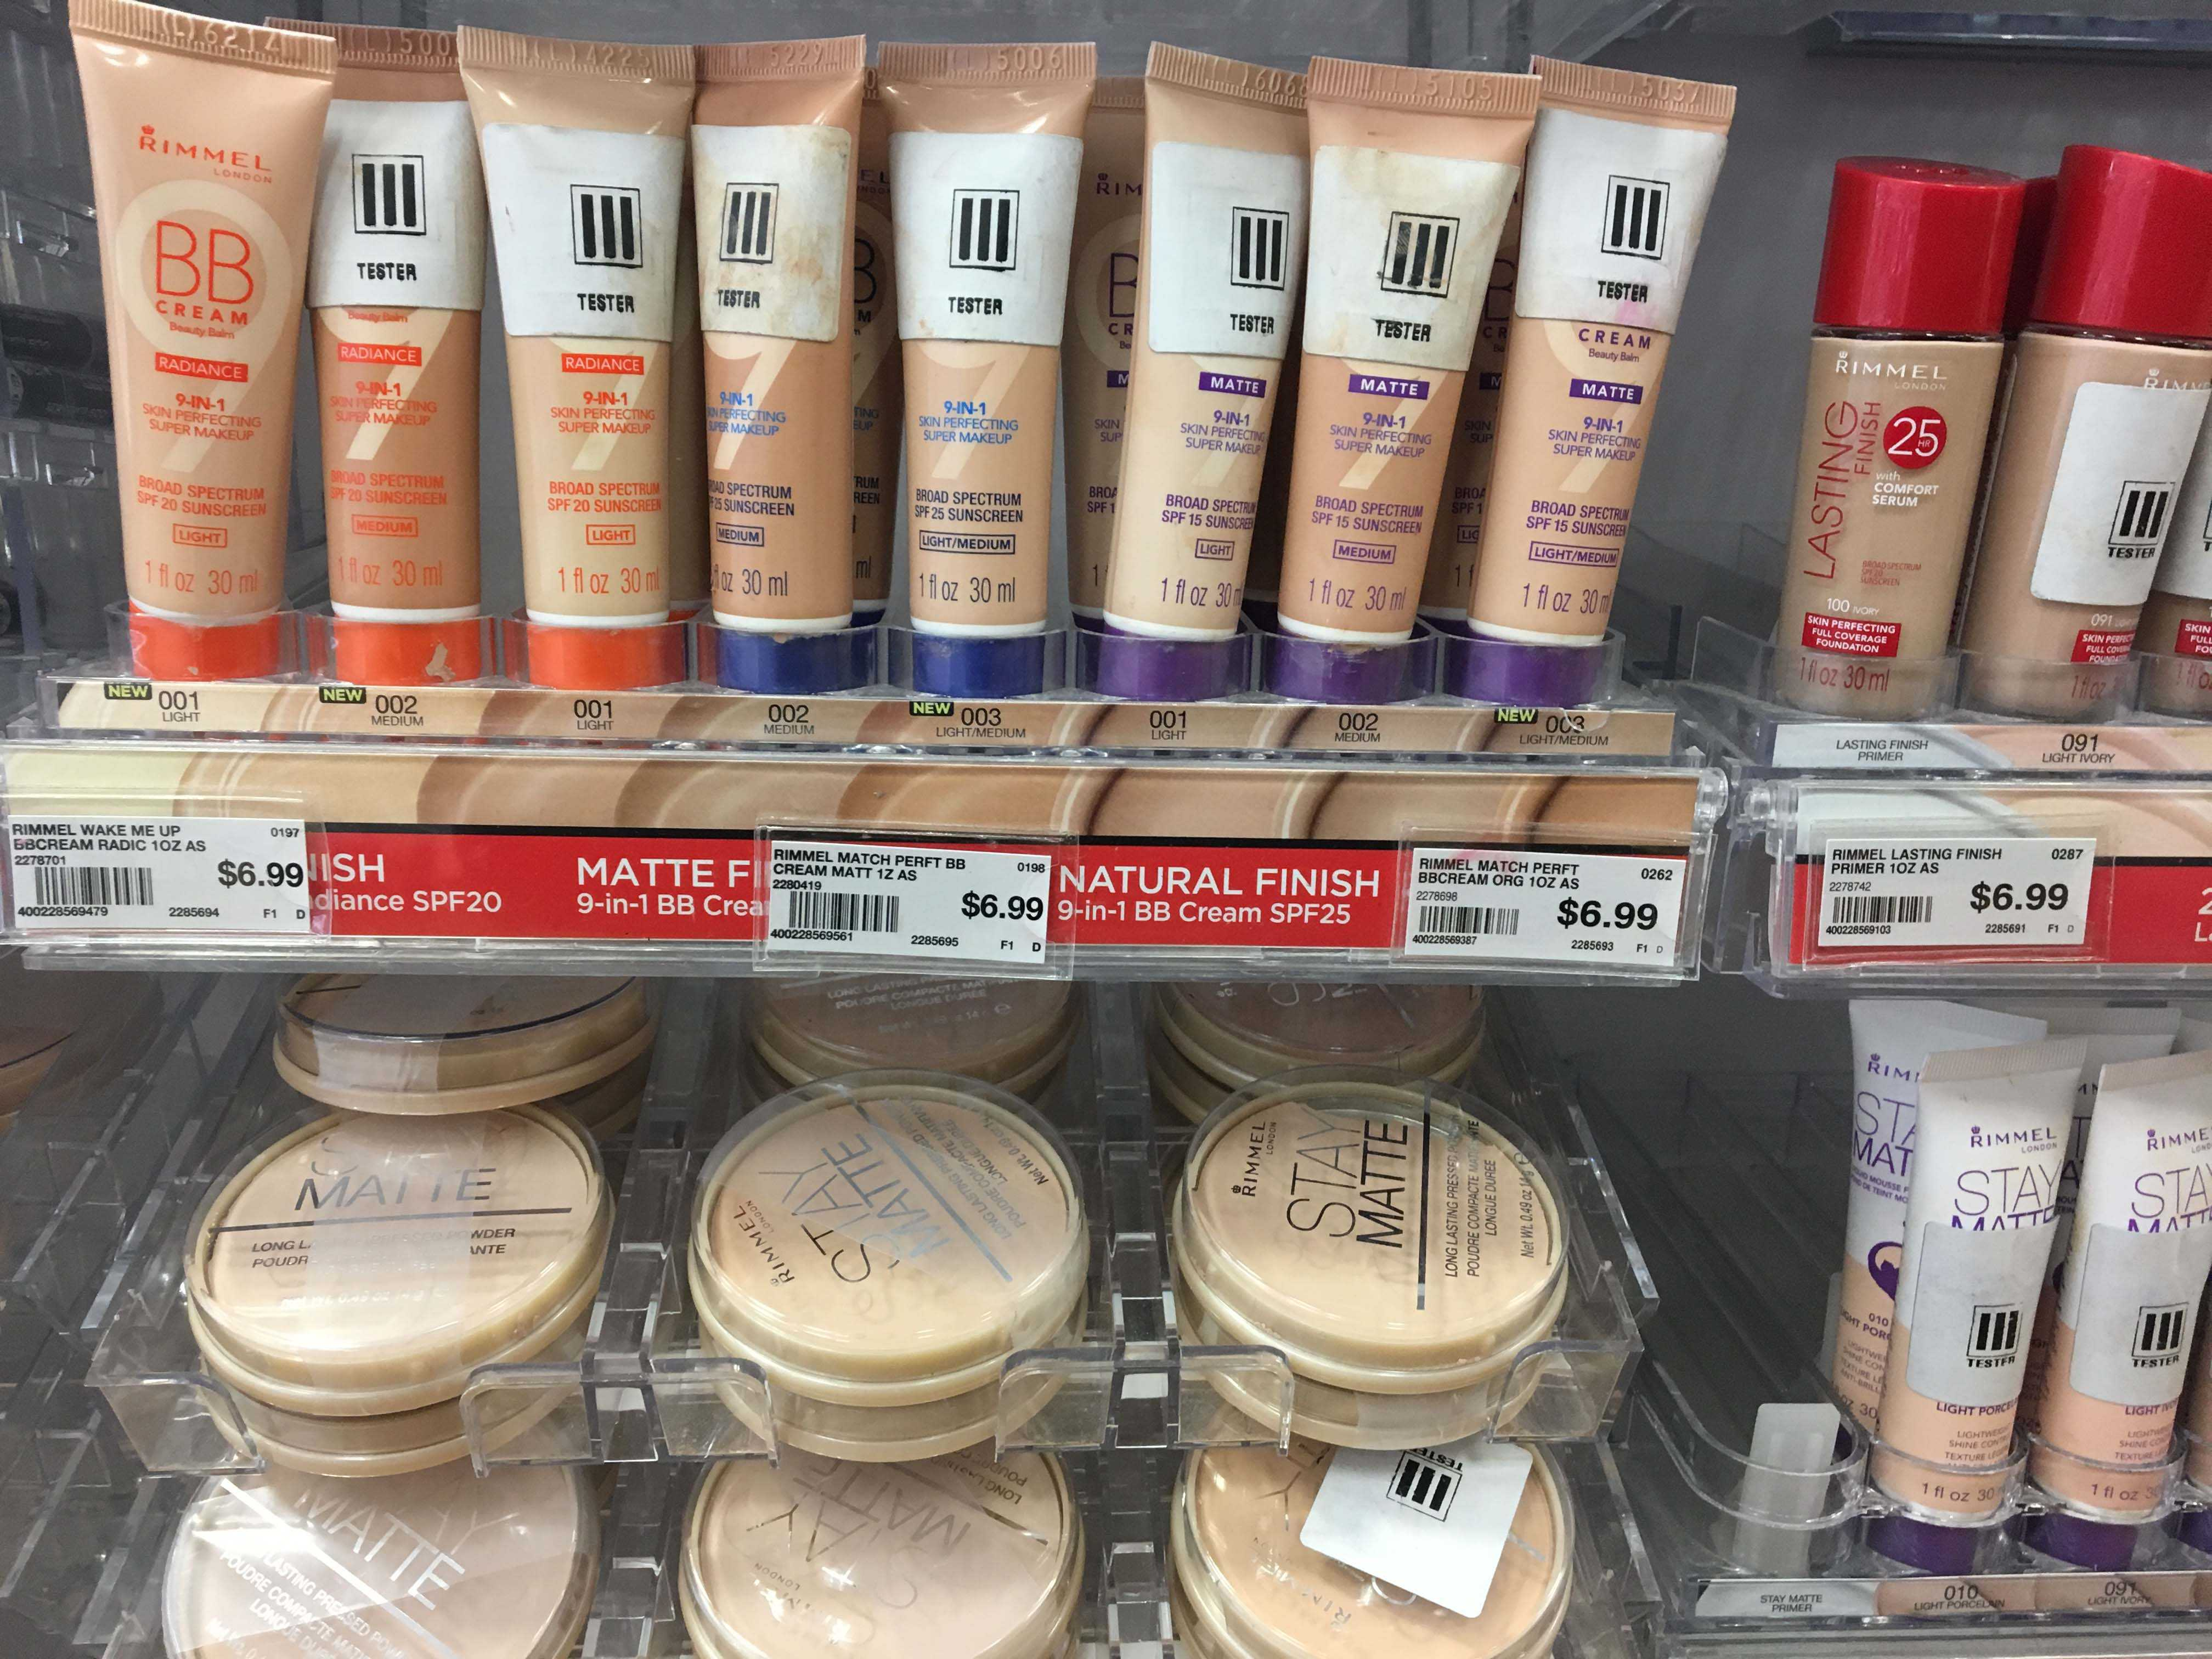 Pictured above is a line of Rimmel BB Cream, which all are in a similar shade and no options for darker skin tones.